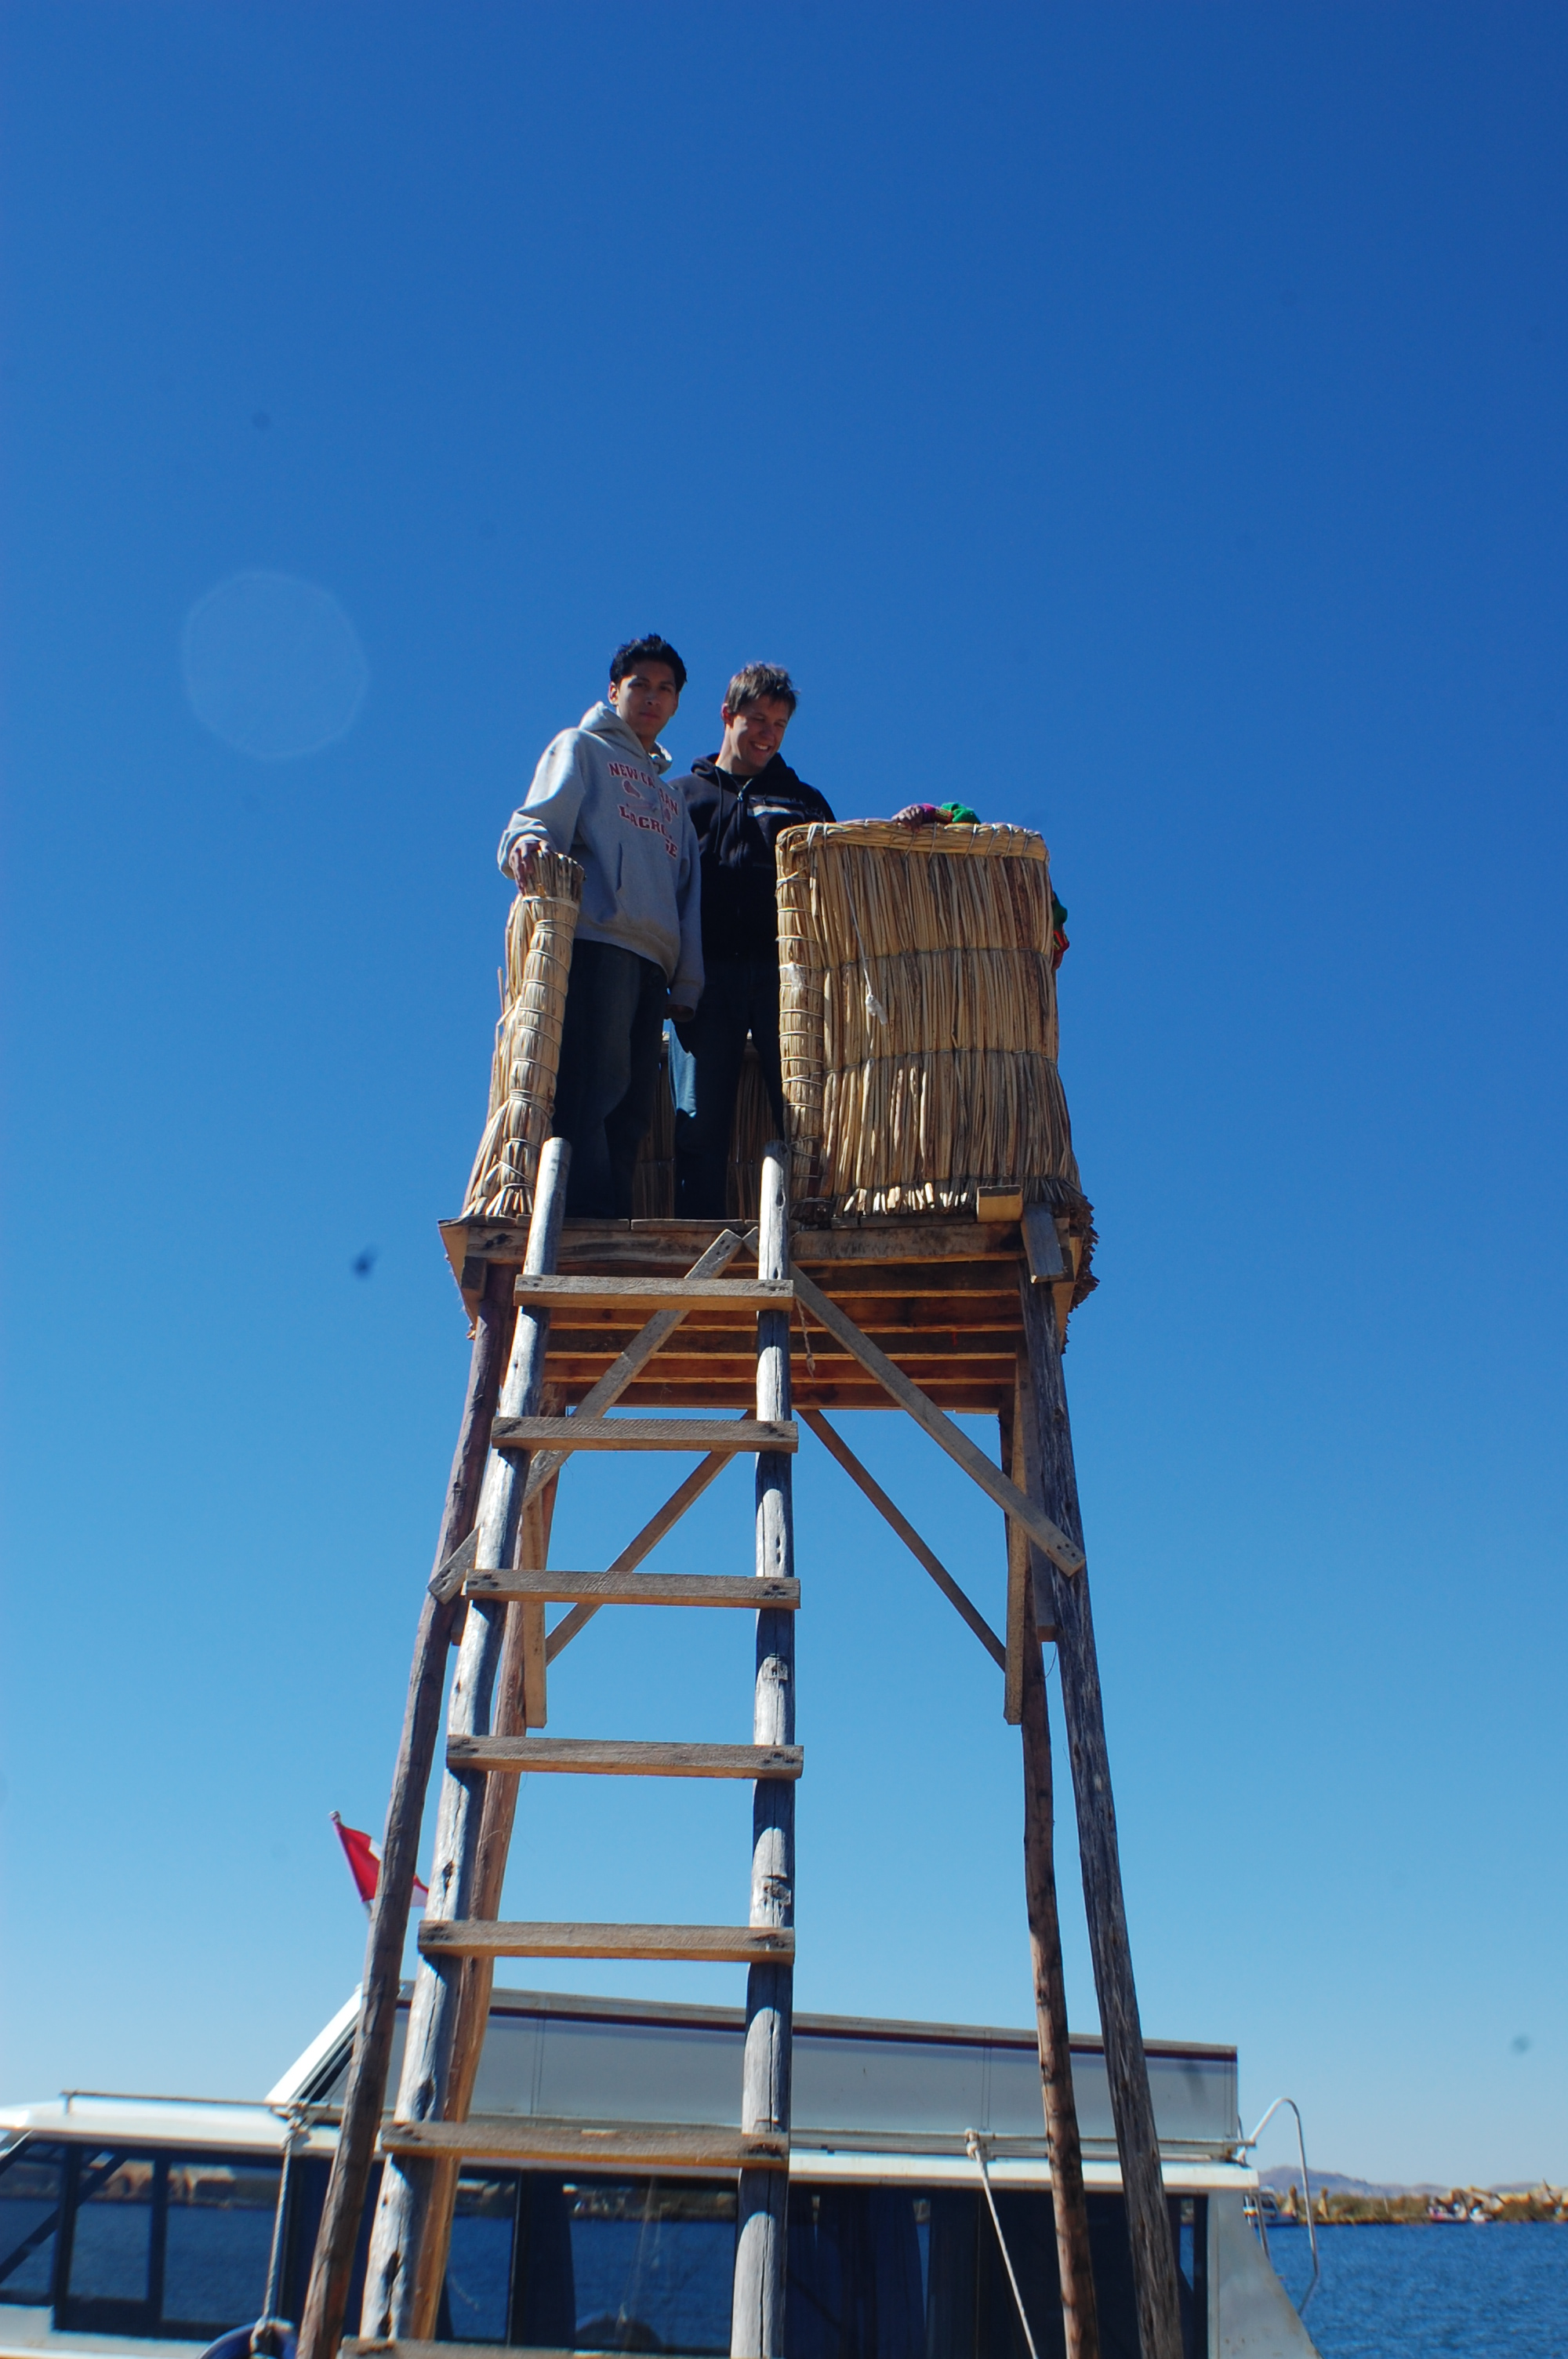 The watch tower on the largest island is made entirely of reeds